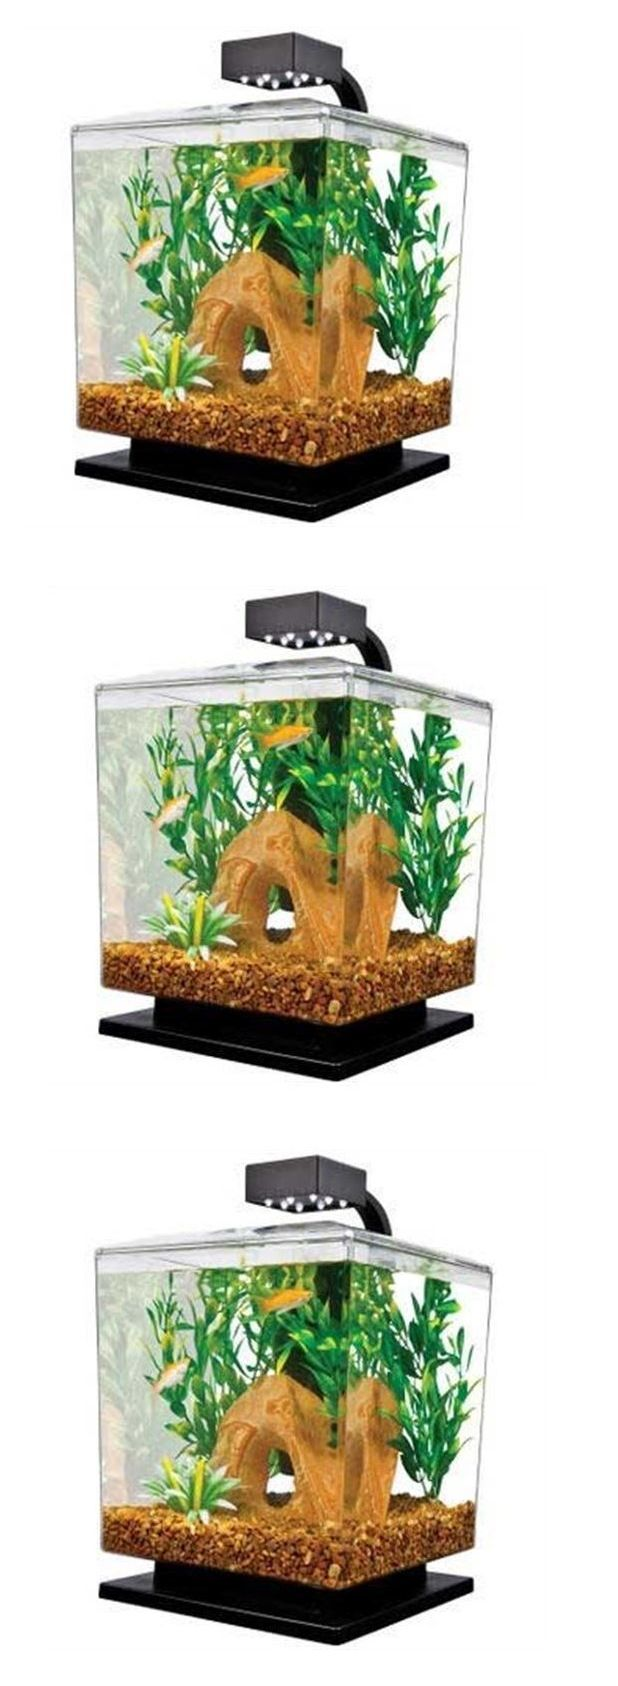 Aquarium fish tank starter kit - Animals Fish And Aquariums Aquarium Starter Kit Fish Tank Led Betta Filter Light Water Marina